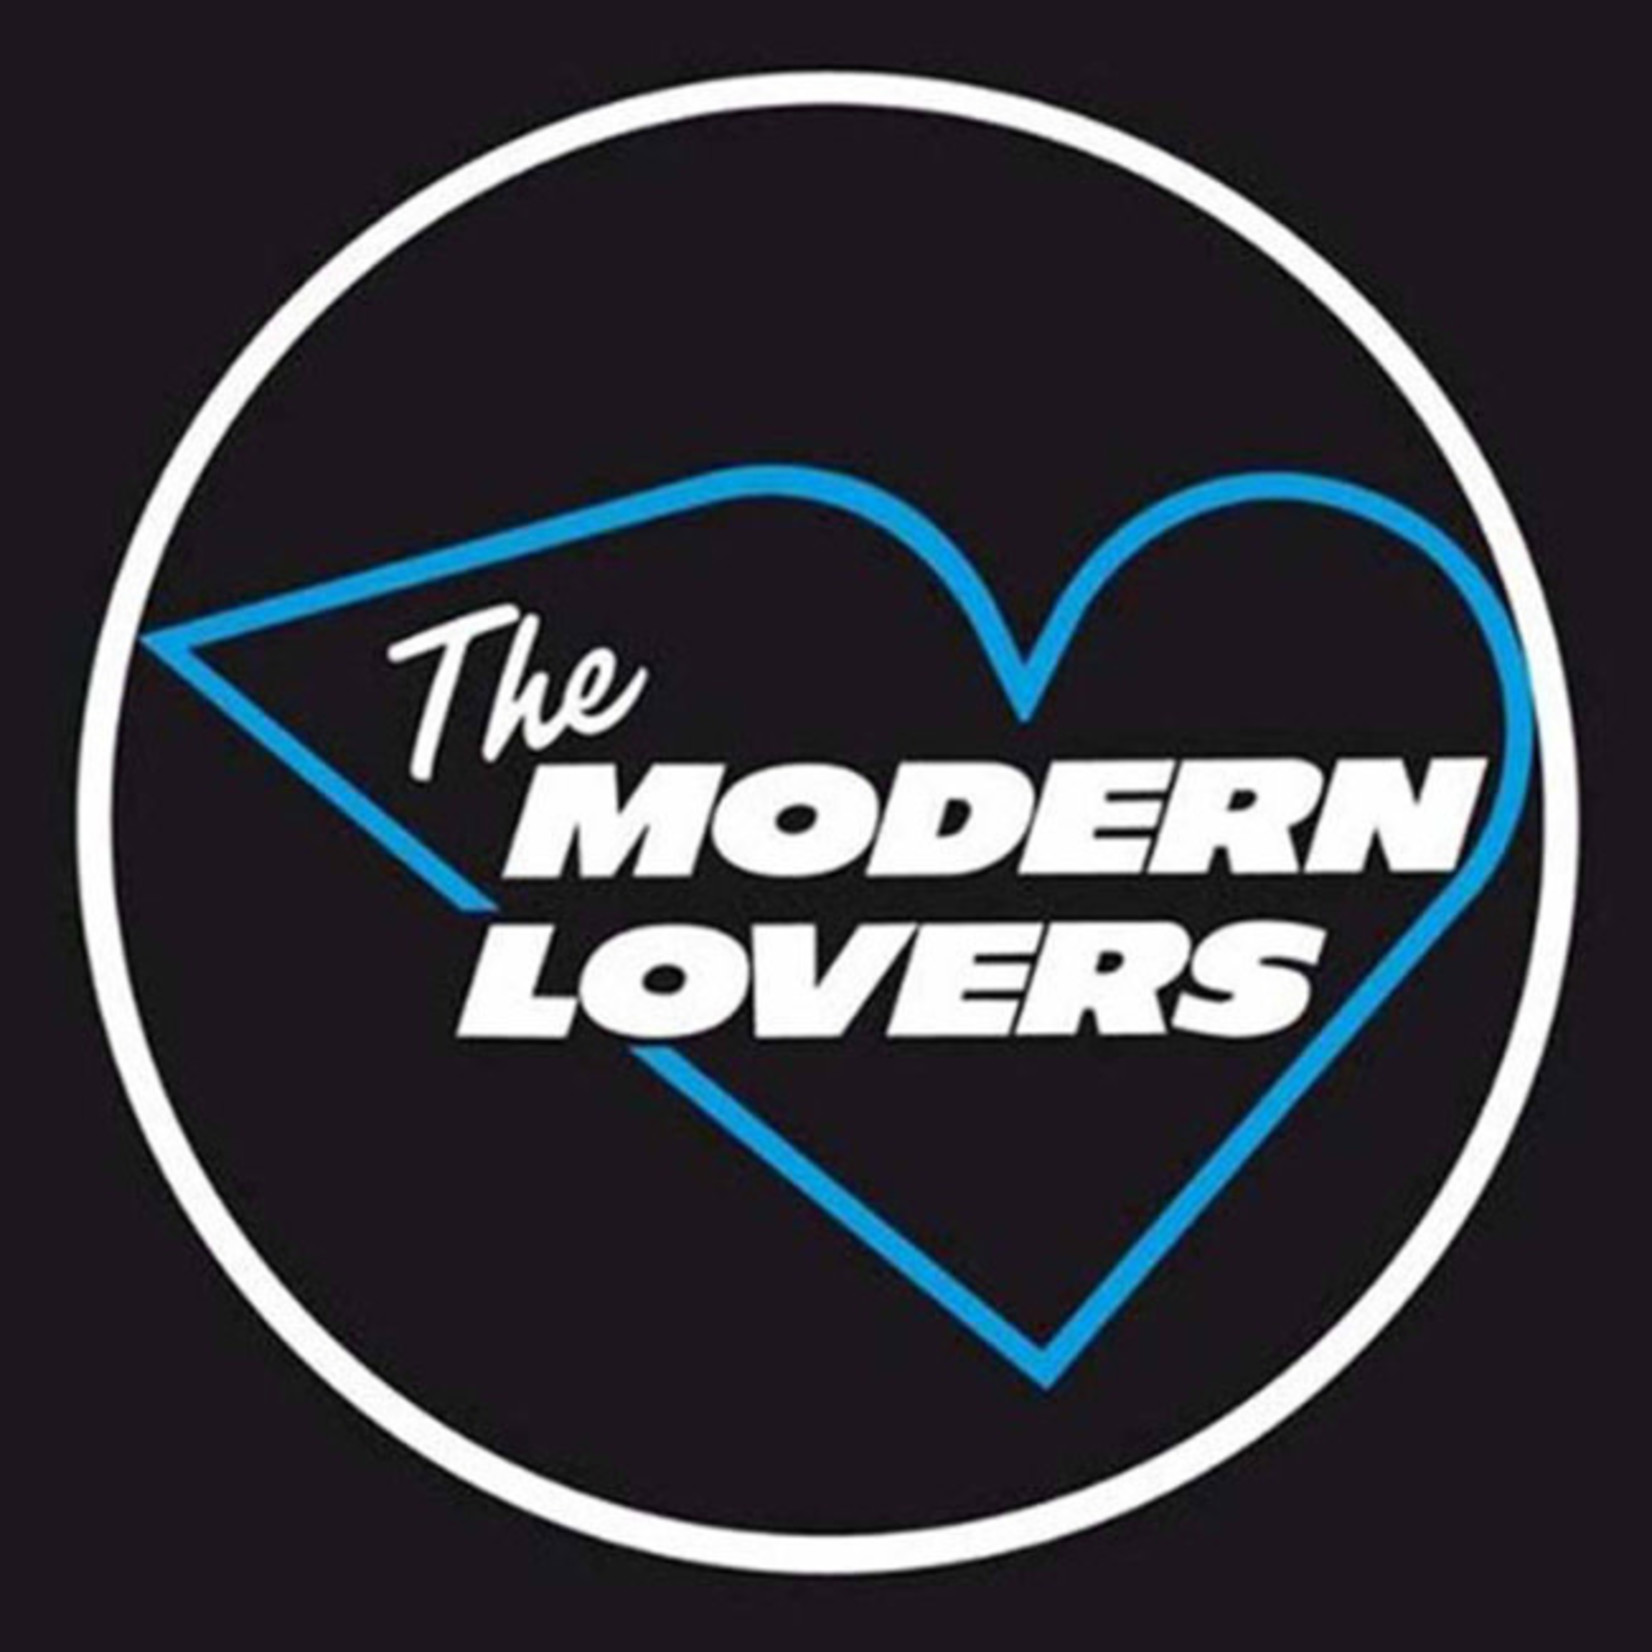 [New] Modern Lovers: self-titled